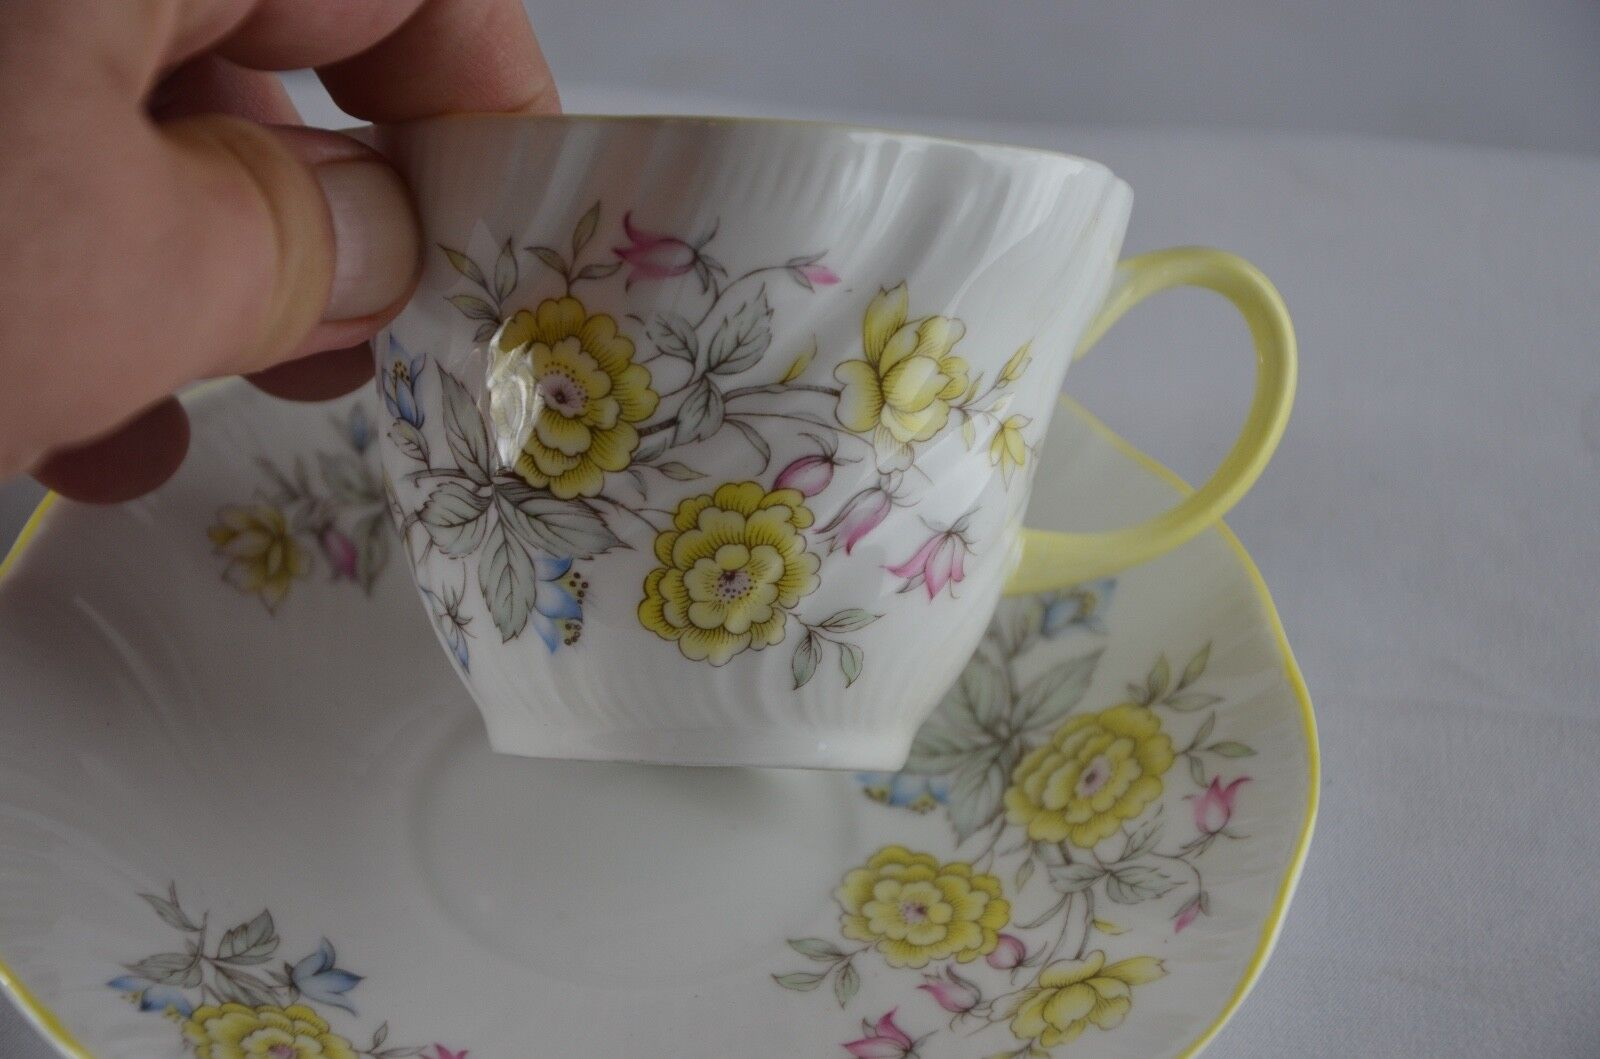 Tea Cup & Saucer Queen's fine bone china, Made in England, Rosina China Co Ltd